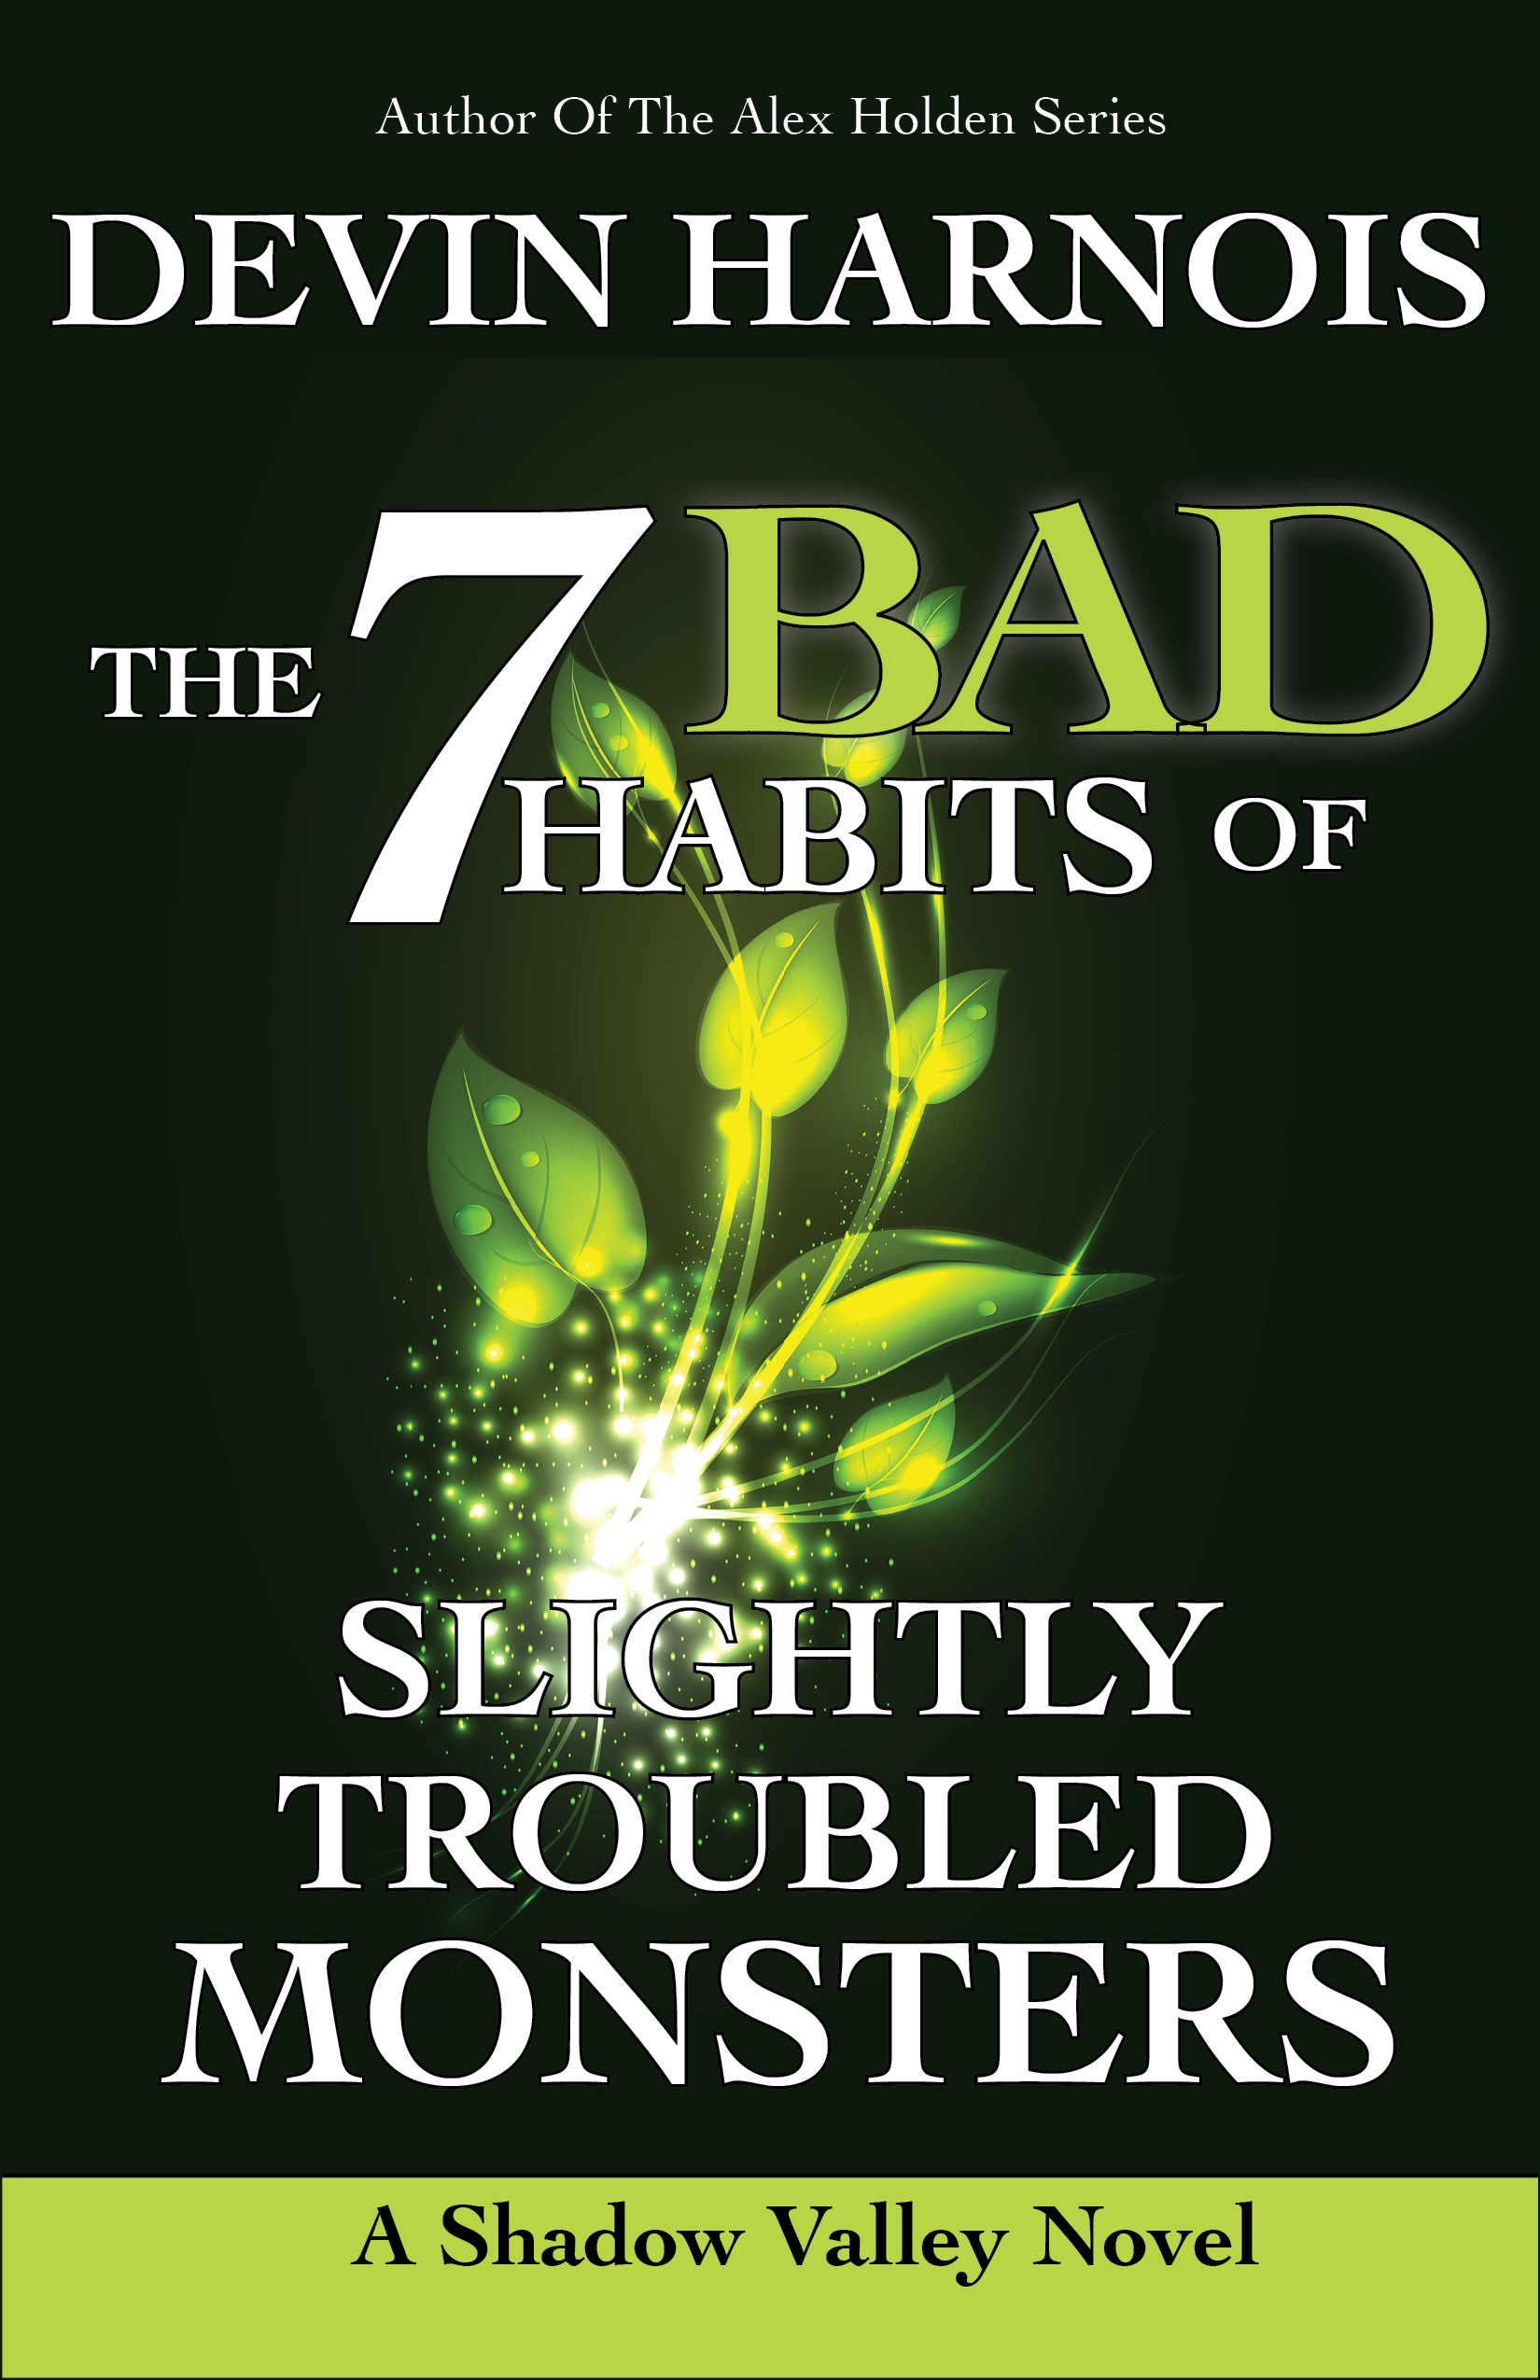 The 7 Bad Habits of Slightly Troubled Monsters